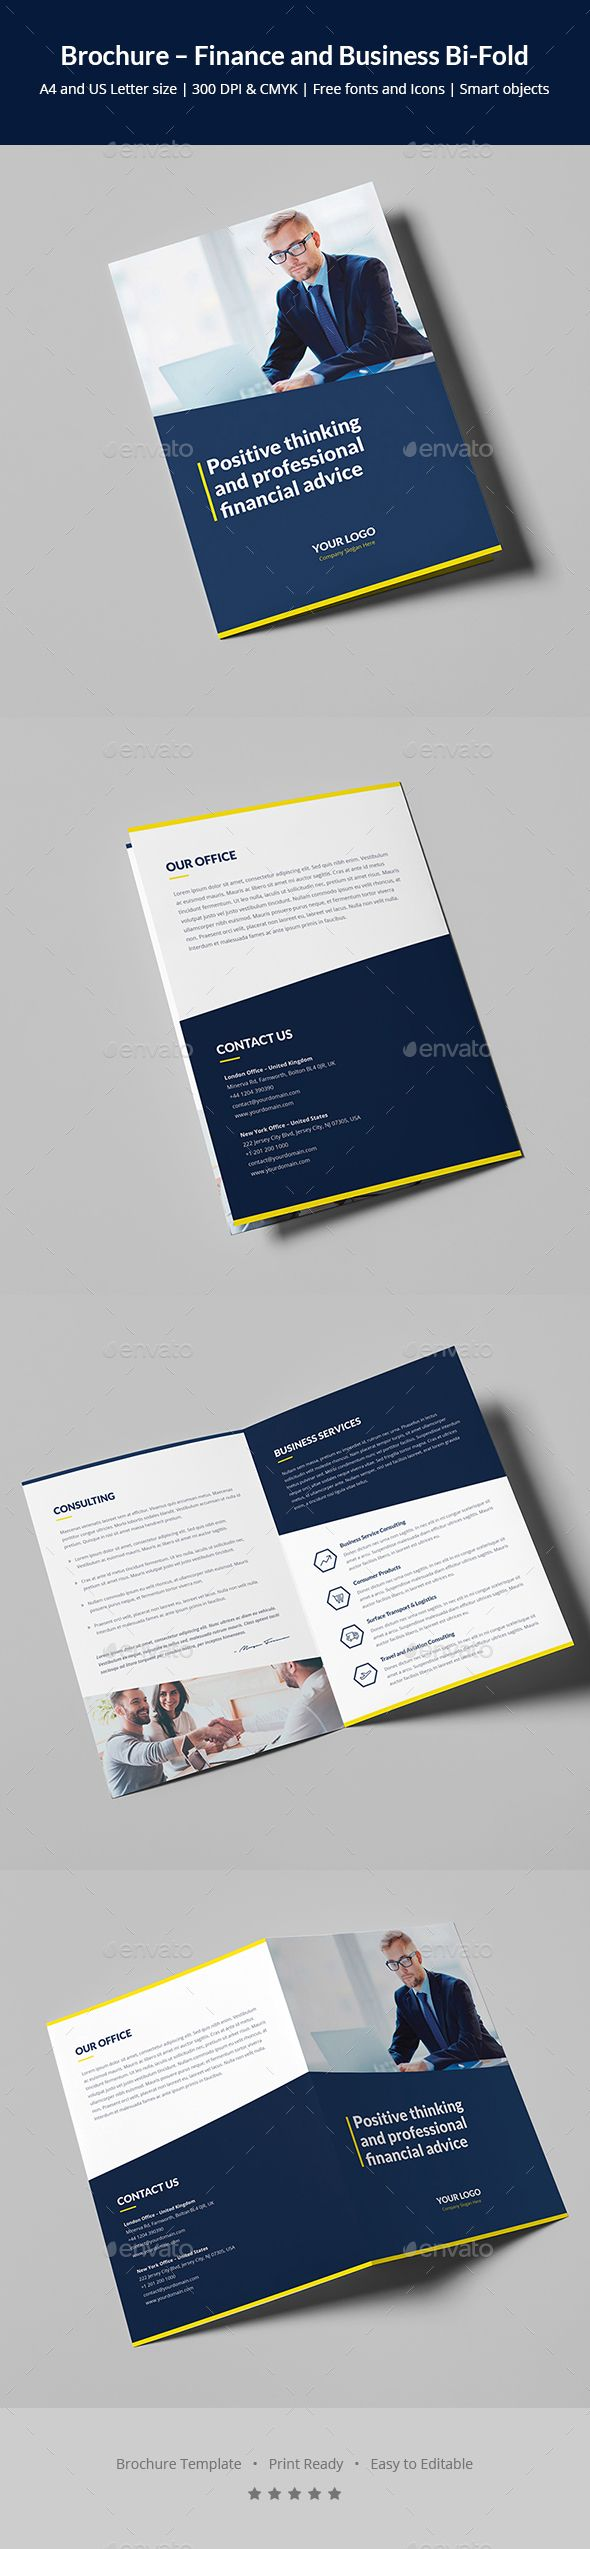 Brochure – Finance and Business BiFold #advice #corporate  • Download here → https://graphicriver.net/item/brochure-finance-and-business-bifold/20633281?ref=pxcr